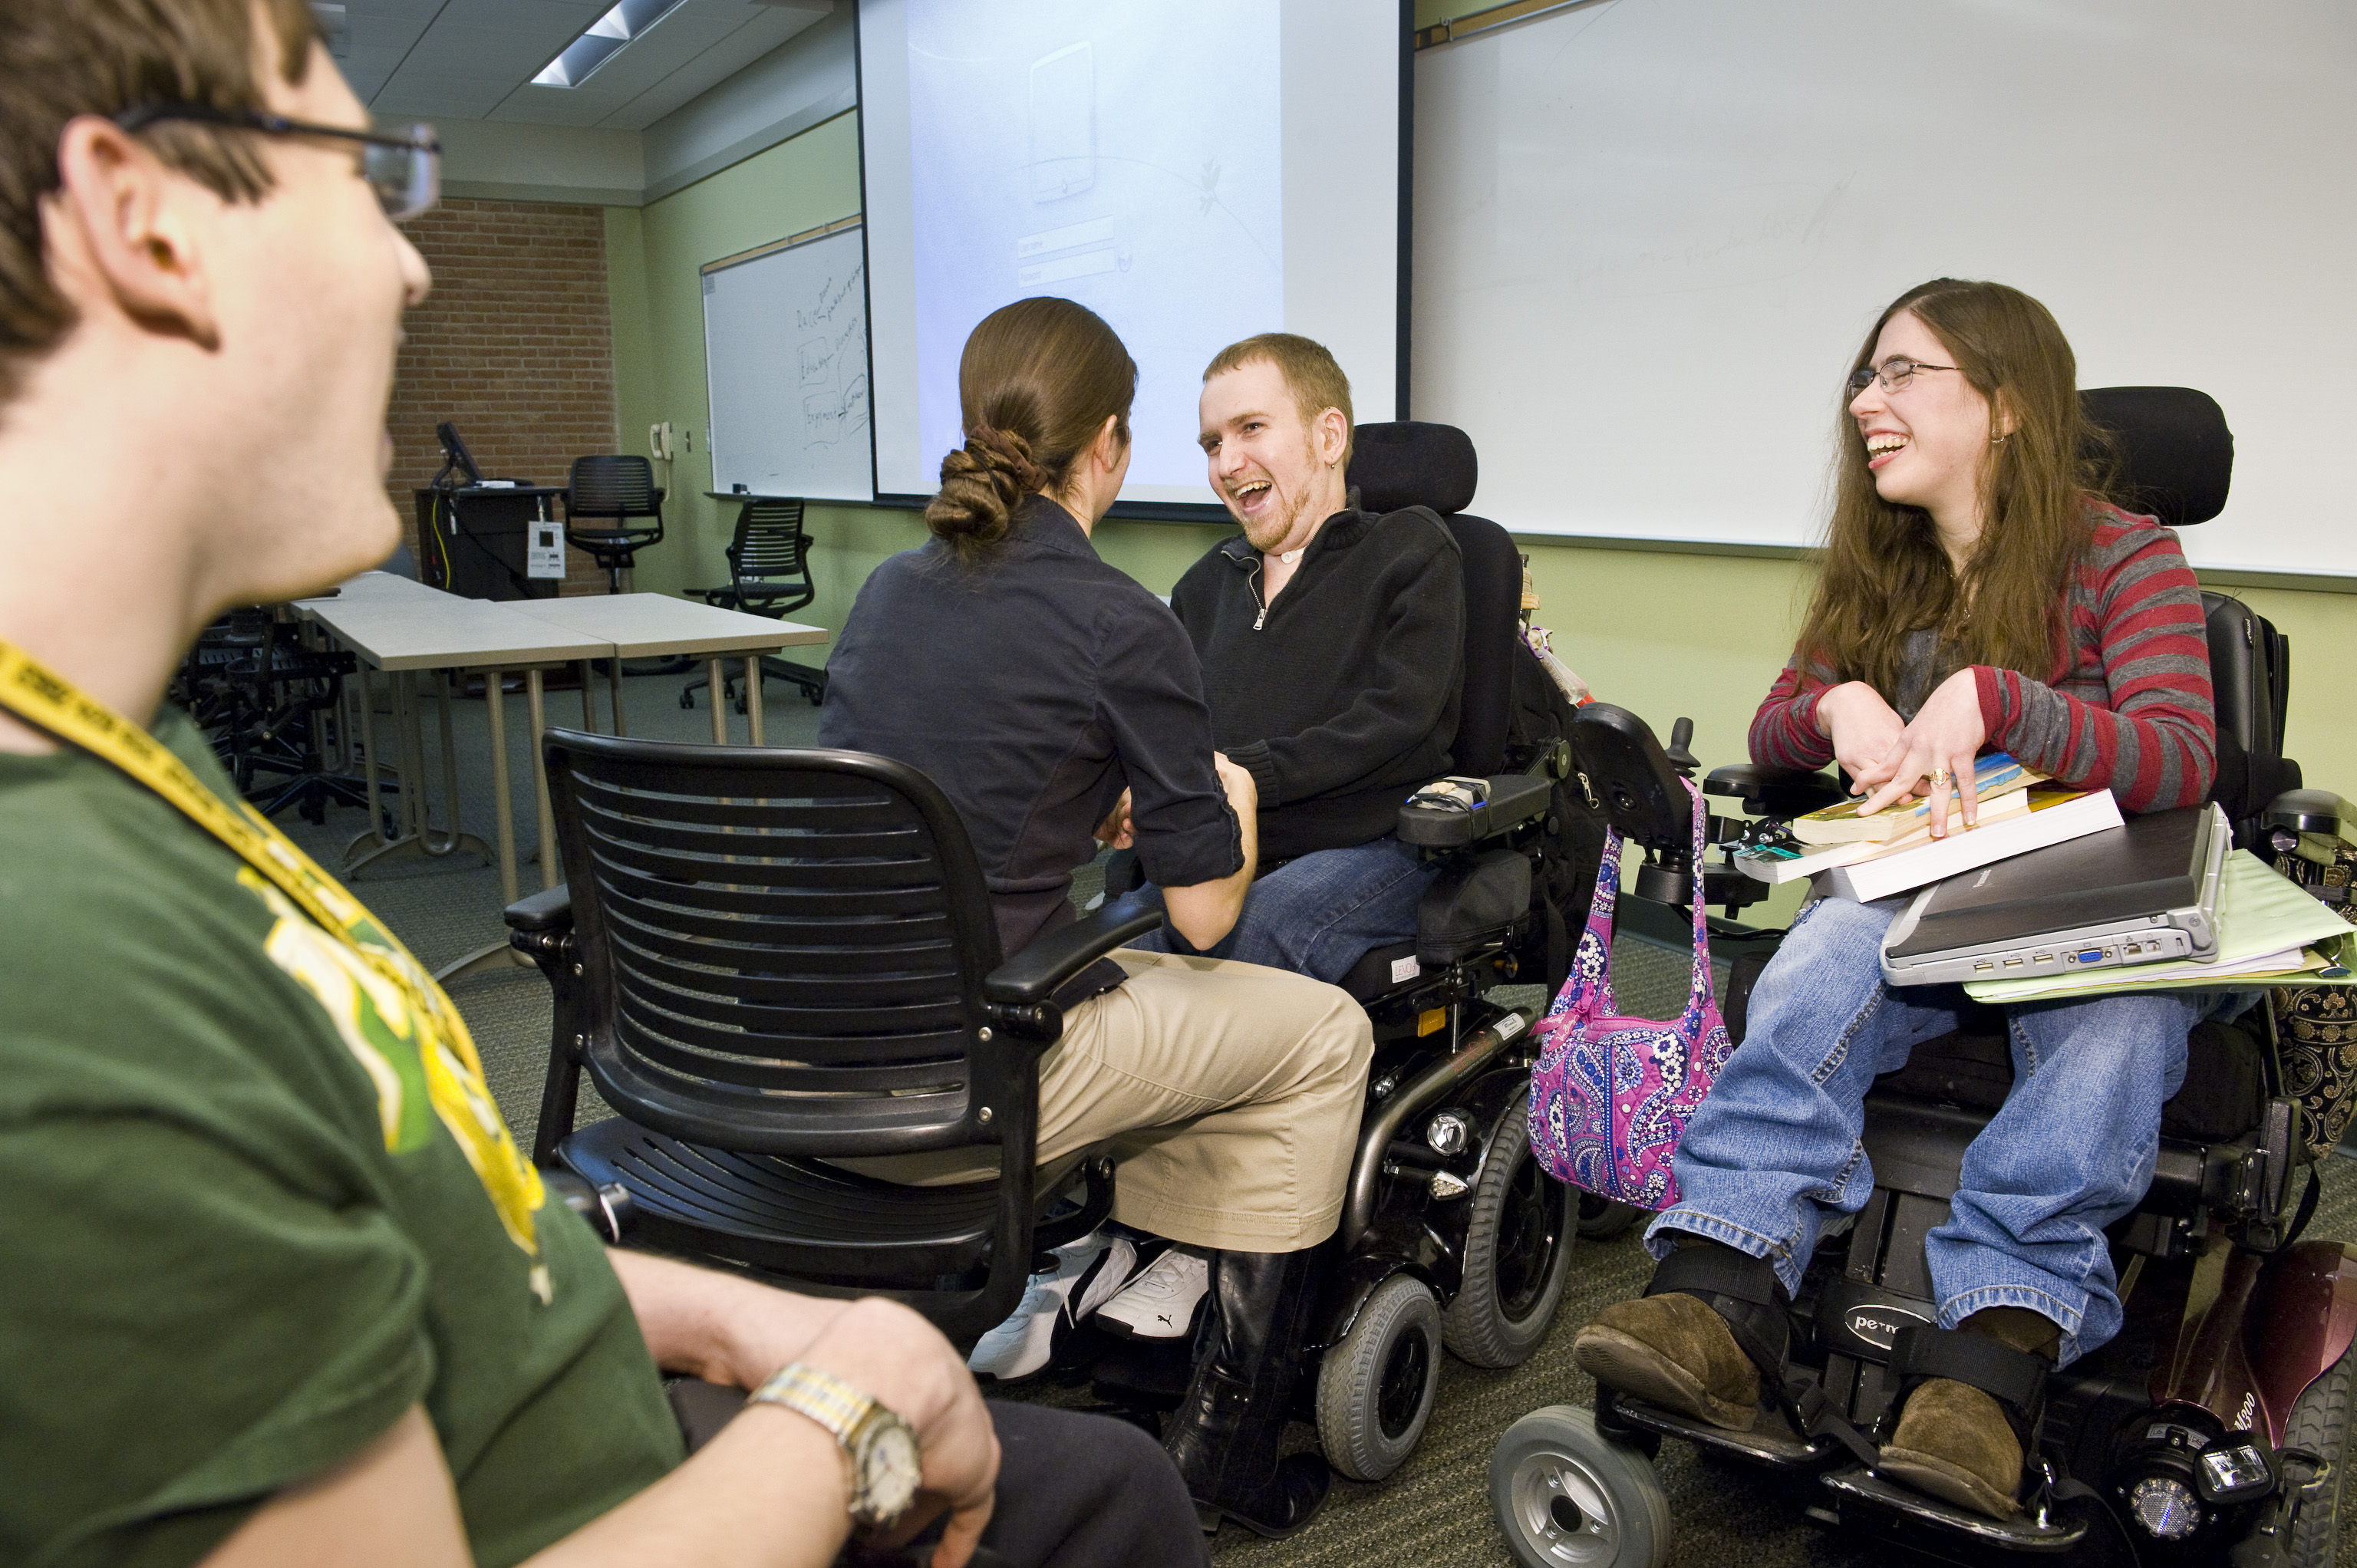 Classroom Design For Disabled Students : Wright state newsroom named one of nation s